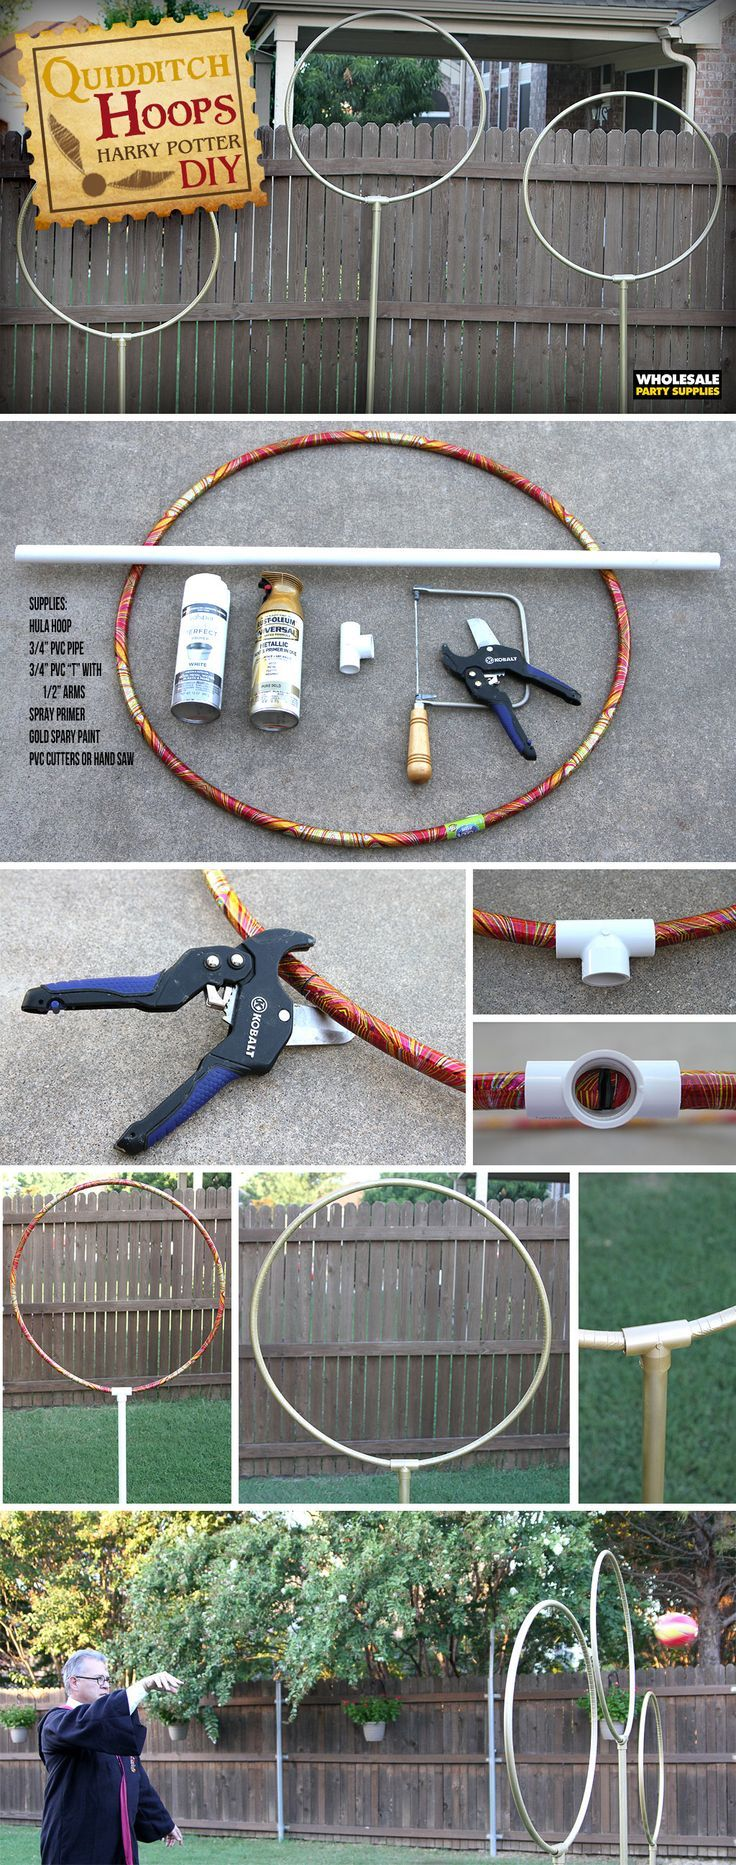 DIY Quidditch Goals for a Harry Potter Party Game kids will LOVE! Perfect for a kids Birthday Party. #affiliate #harrypotter #harrypotterfan #diy #kids #kidsgame #games #diygame #fun #kidsparty #partyideas #partygames #birthdayparty #party